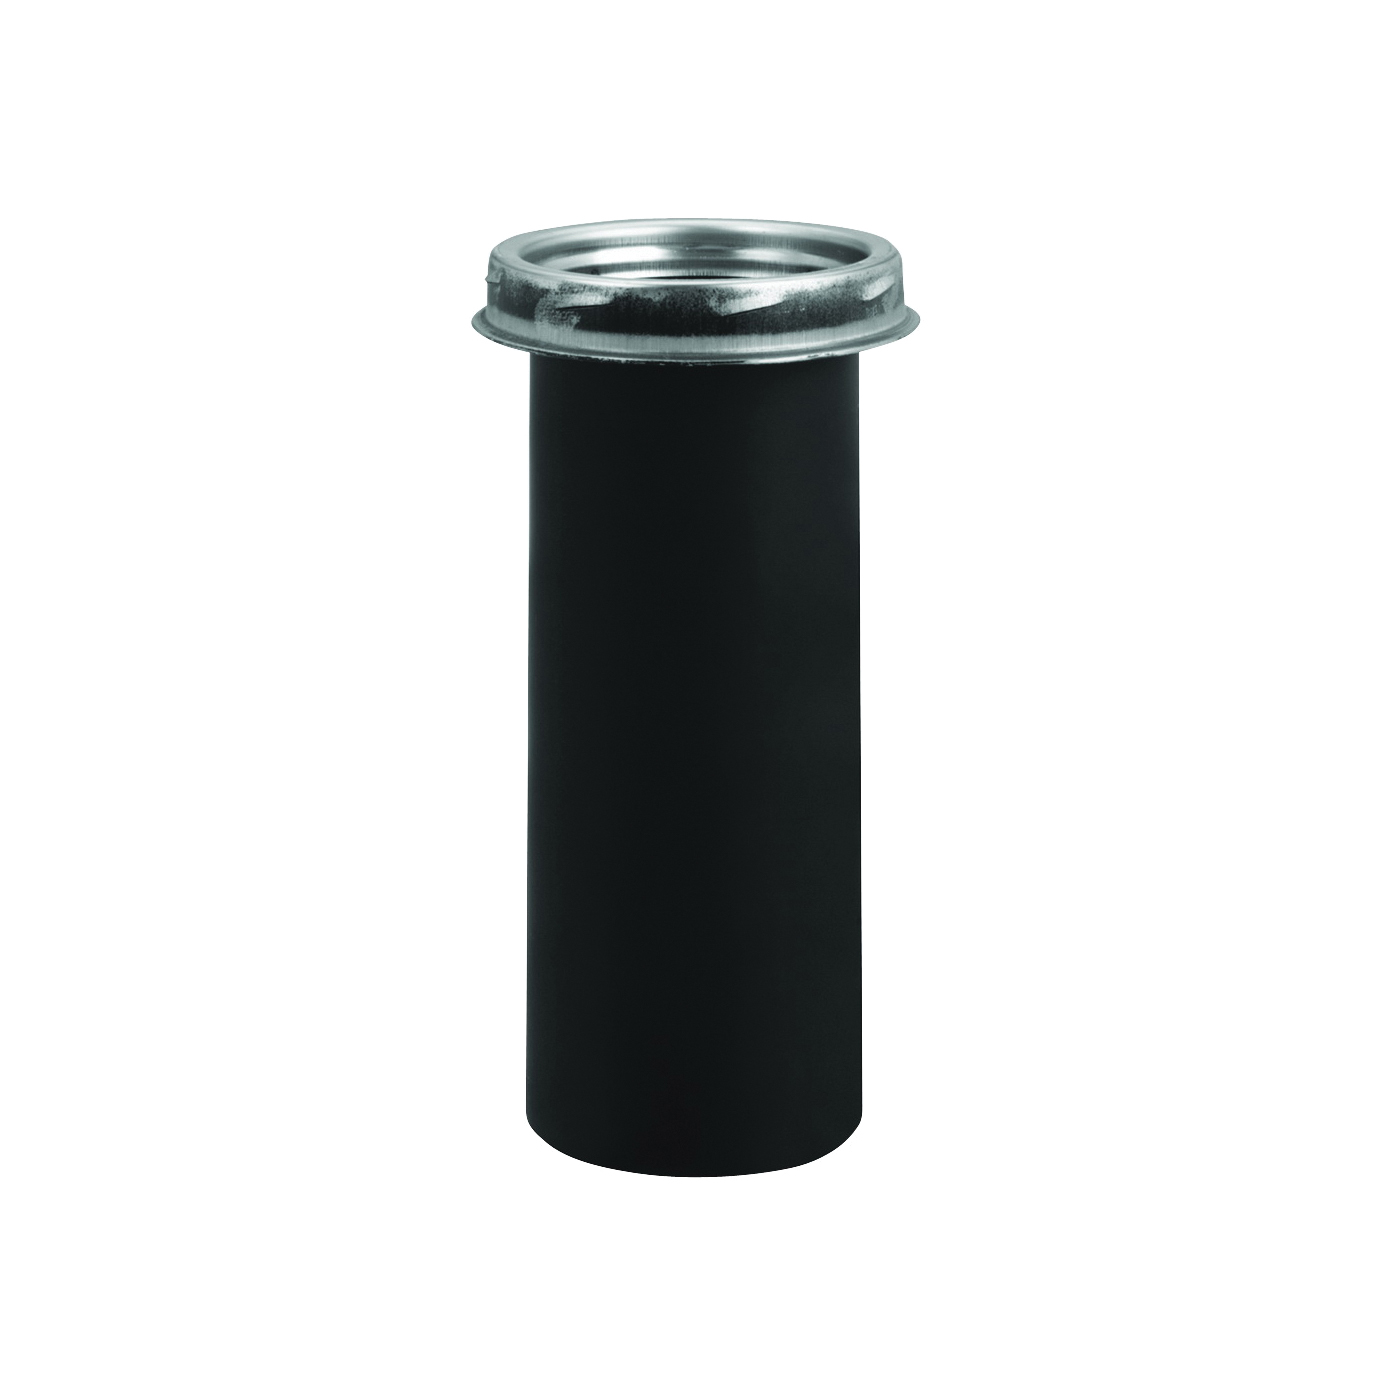 Picture of SELKIRK 206240 Drip less Smoke Stove Pipe Adapter, 430 Stainless Steel